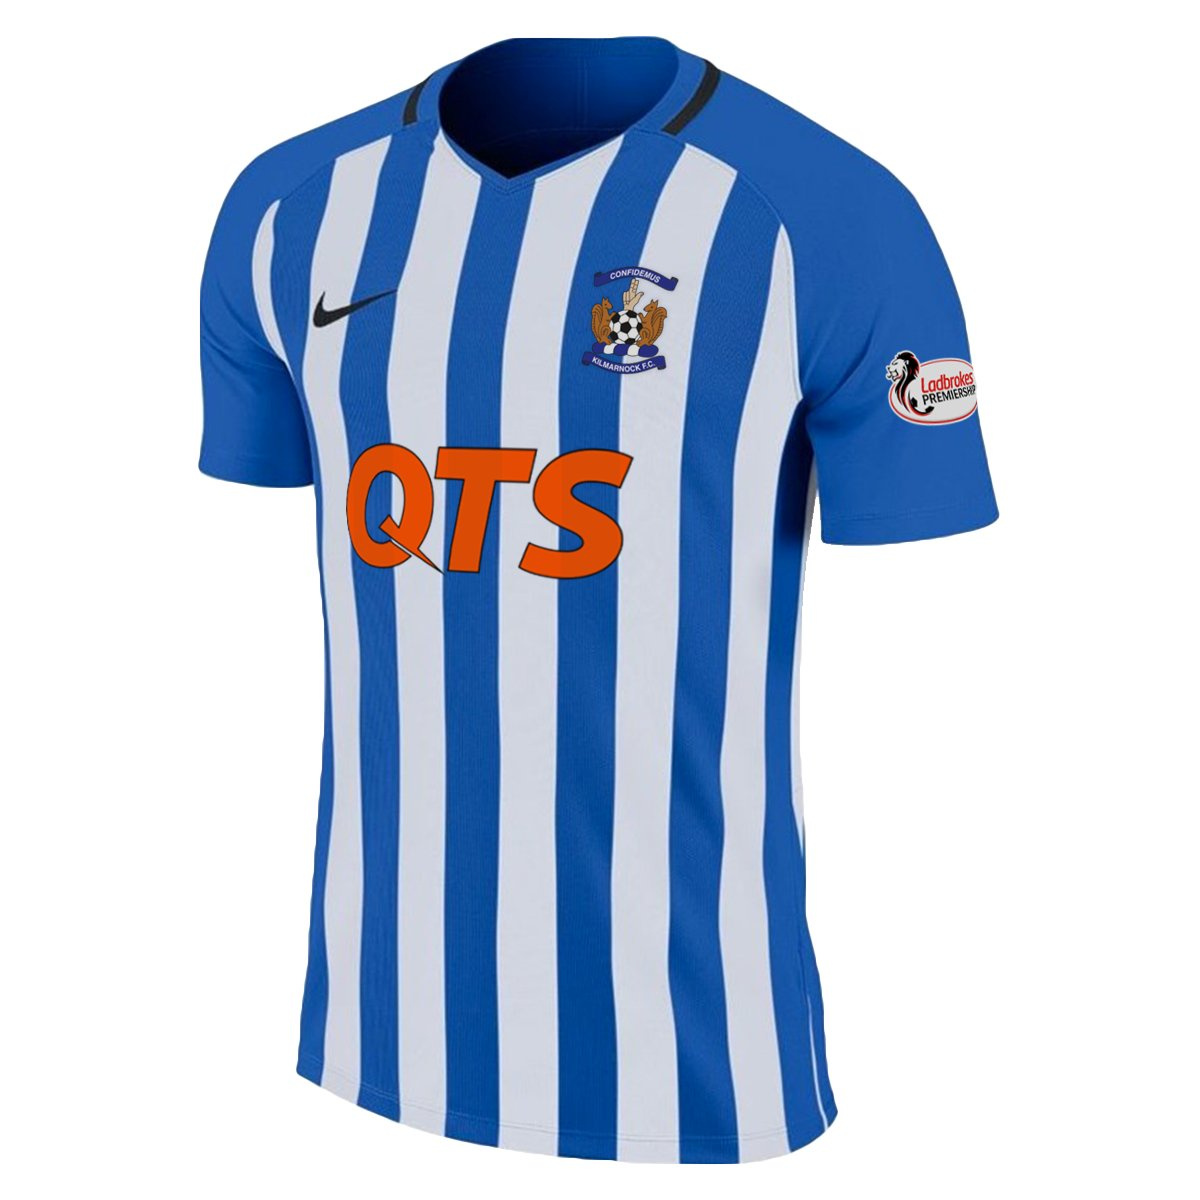 New Killie Top 18-19